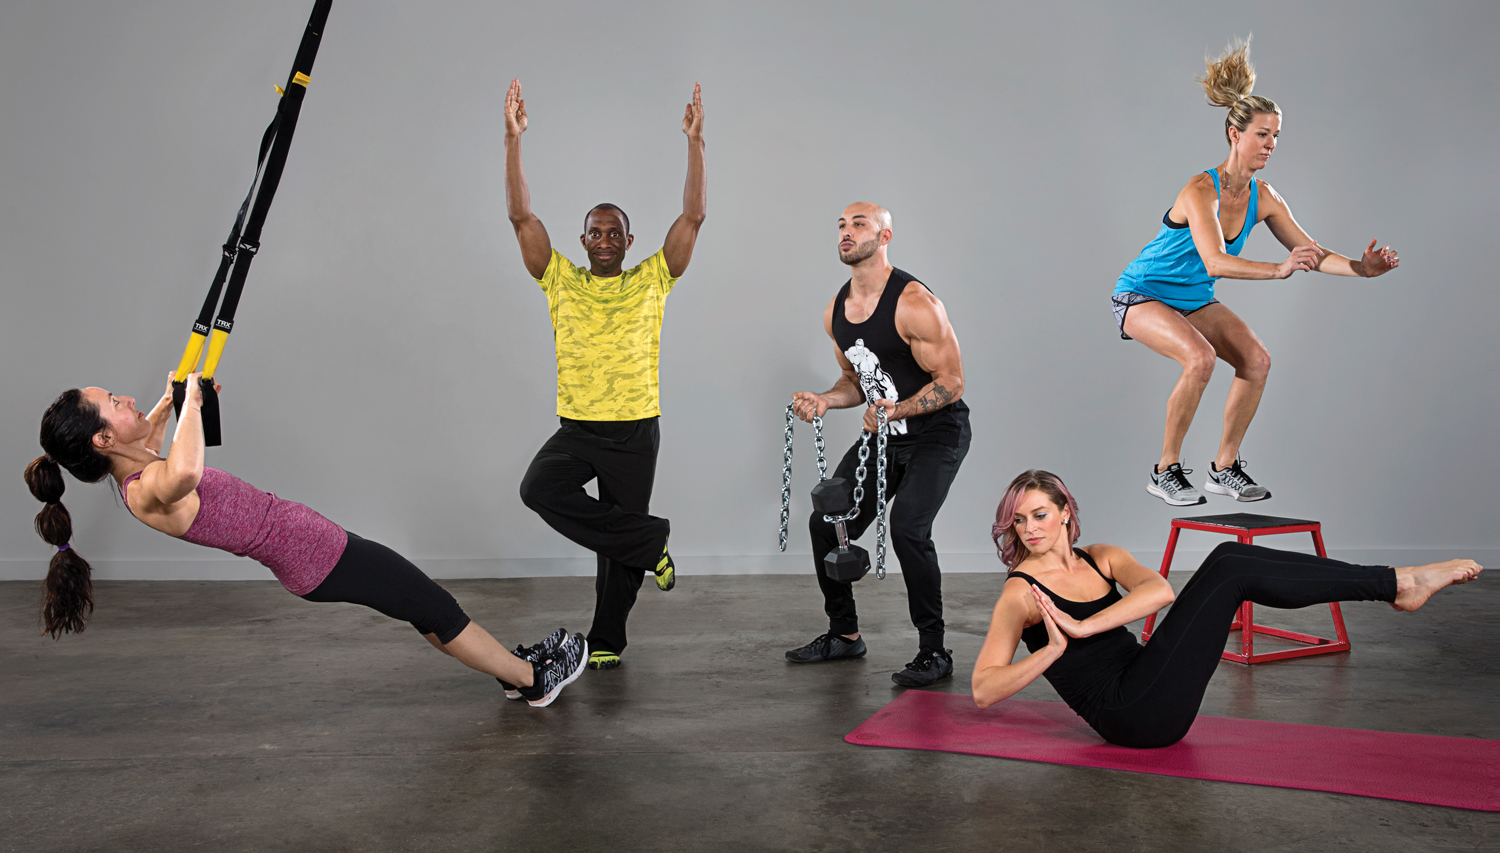 Atlanta fitness pros